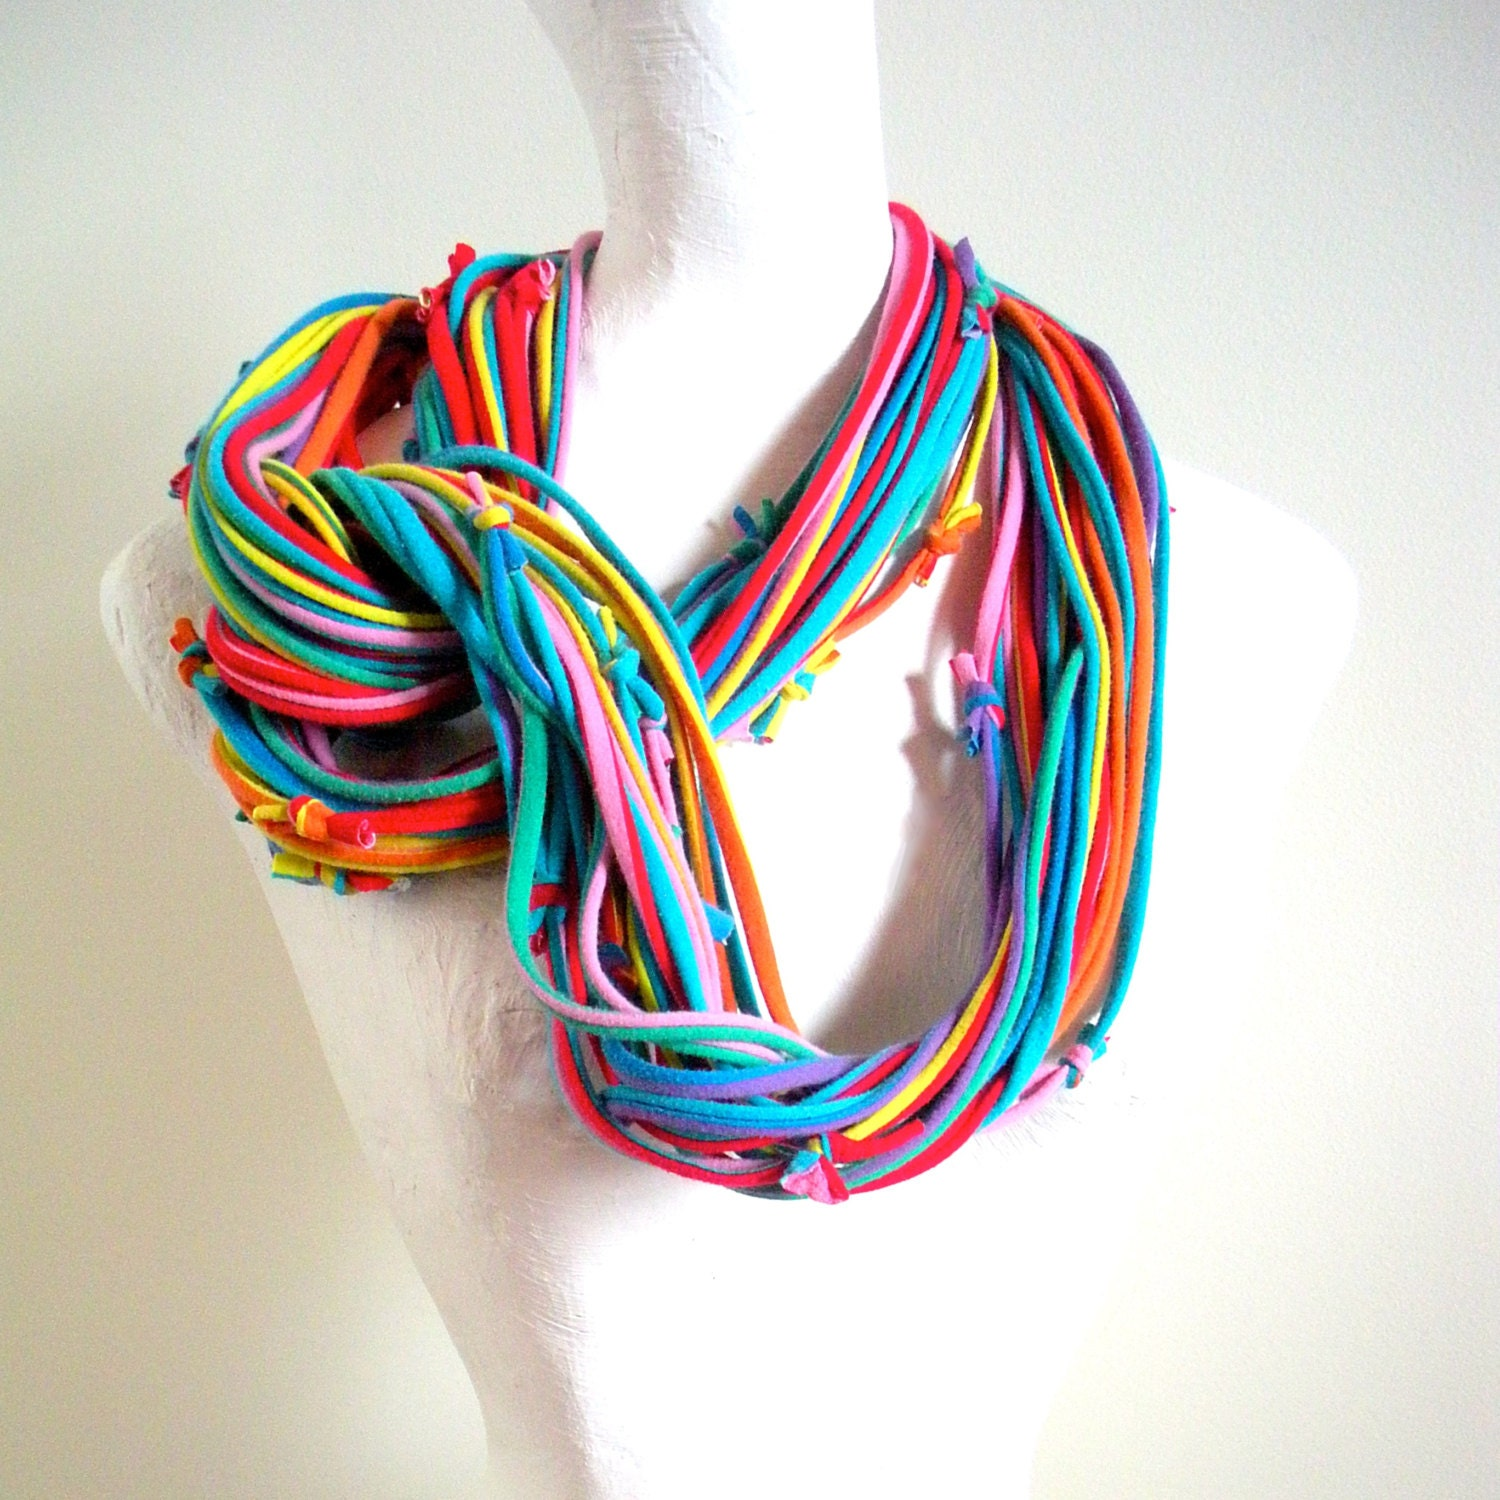 Rainbow Clothing And Accessories